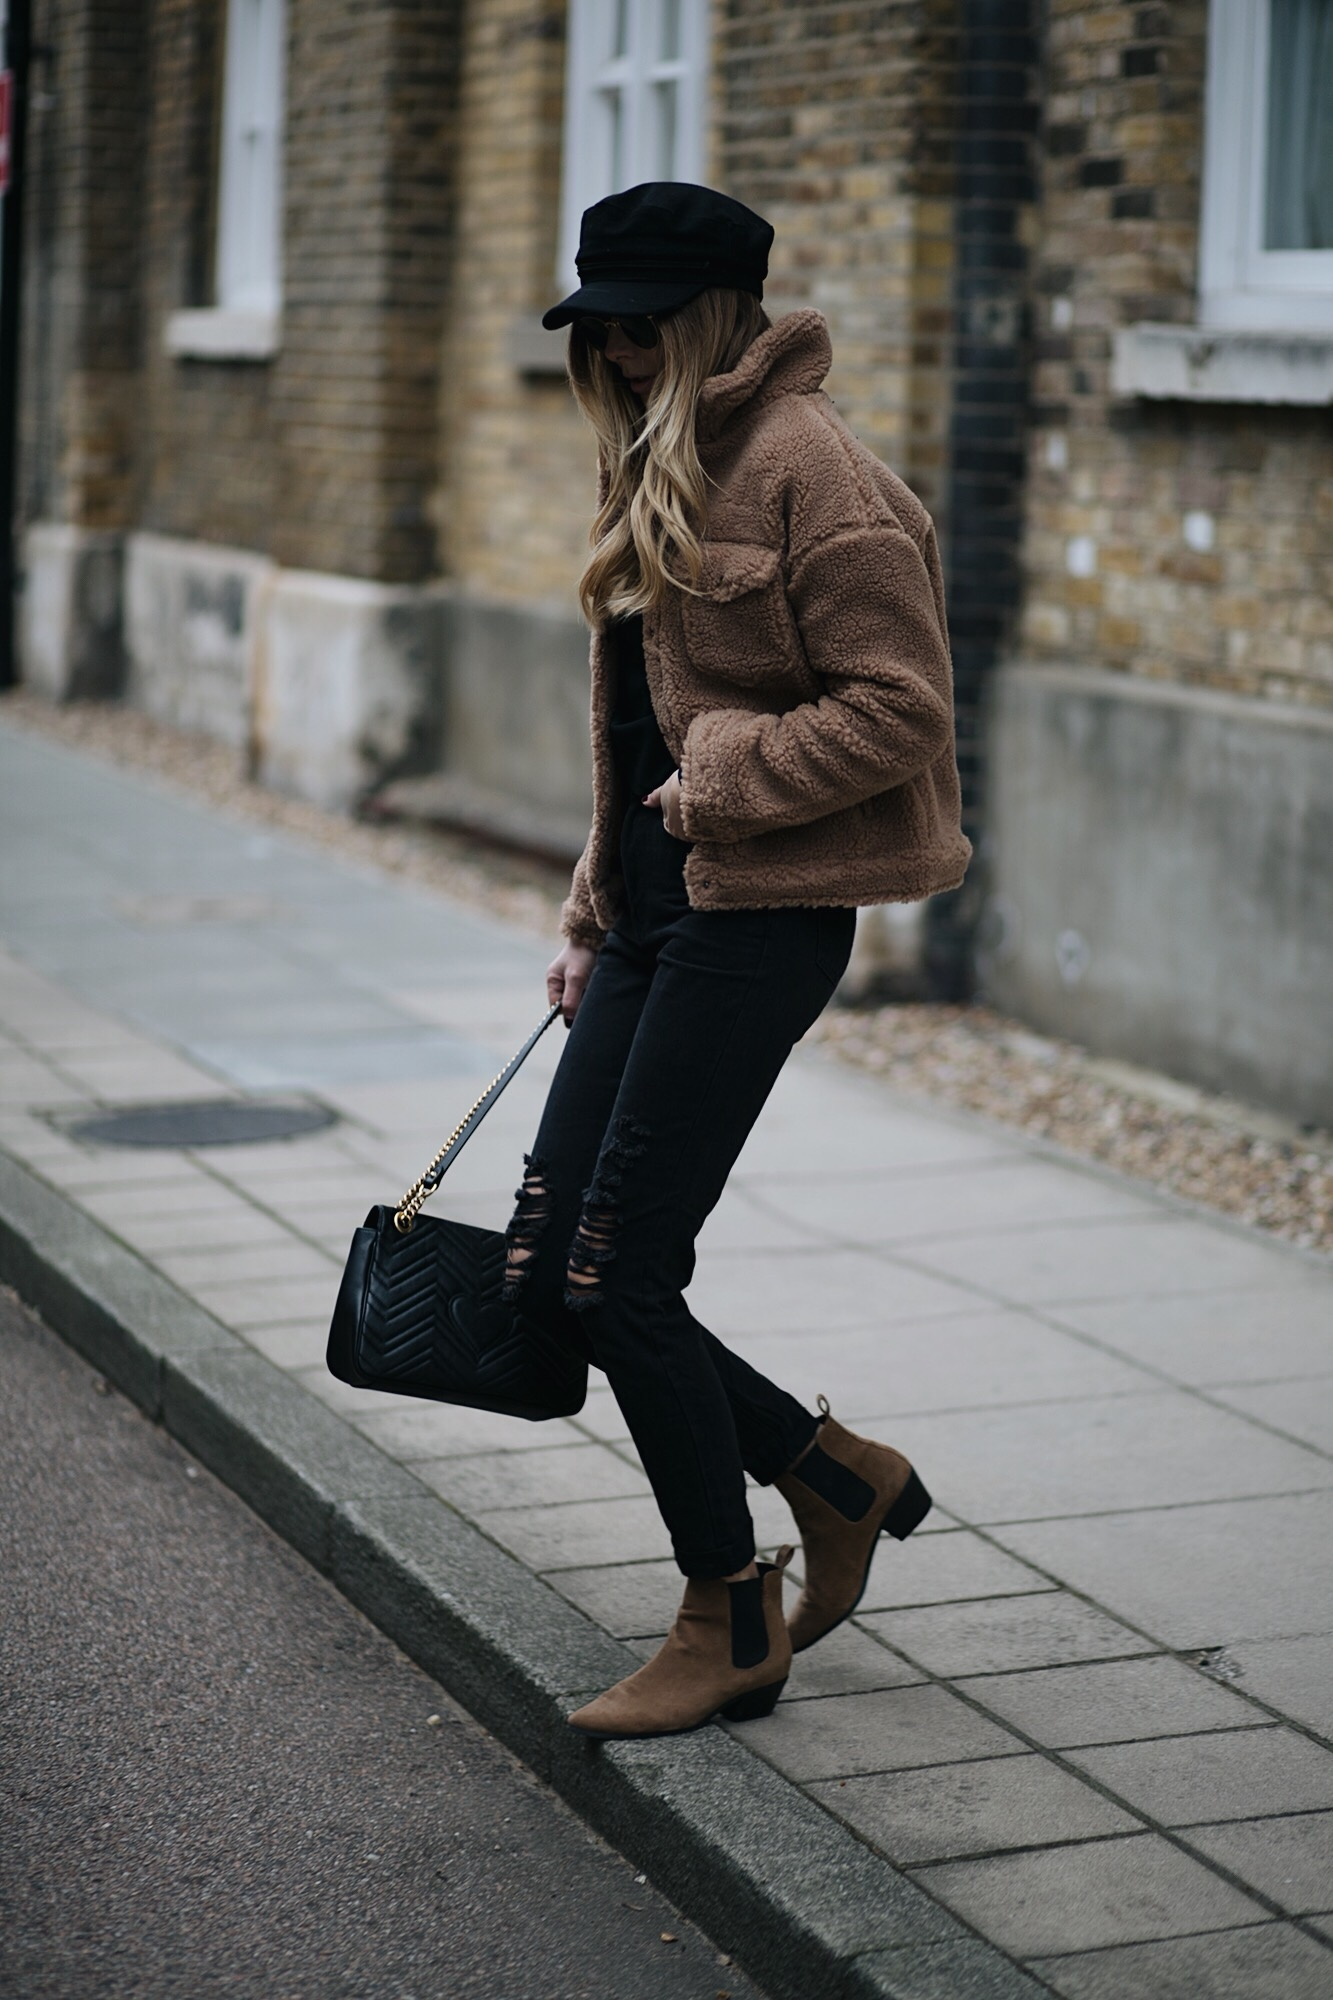 Emma Hill wear camel teddy jacket, ripped black jeans, Gucci Marmont bag, Rayban round gold sunglasses, tan suede Chelsea ankle boots, black baker boy cap hat. Casual Winter outfit